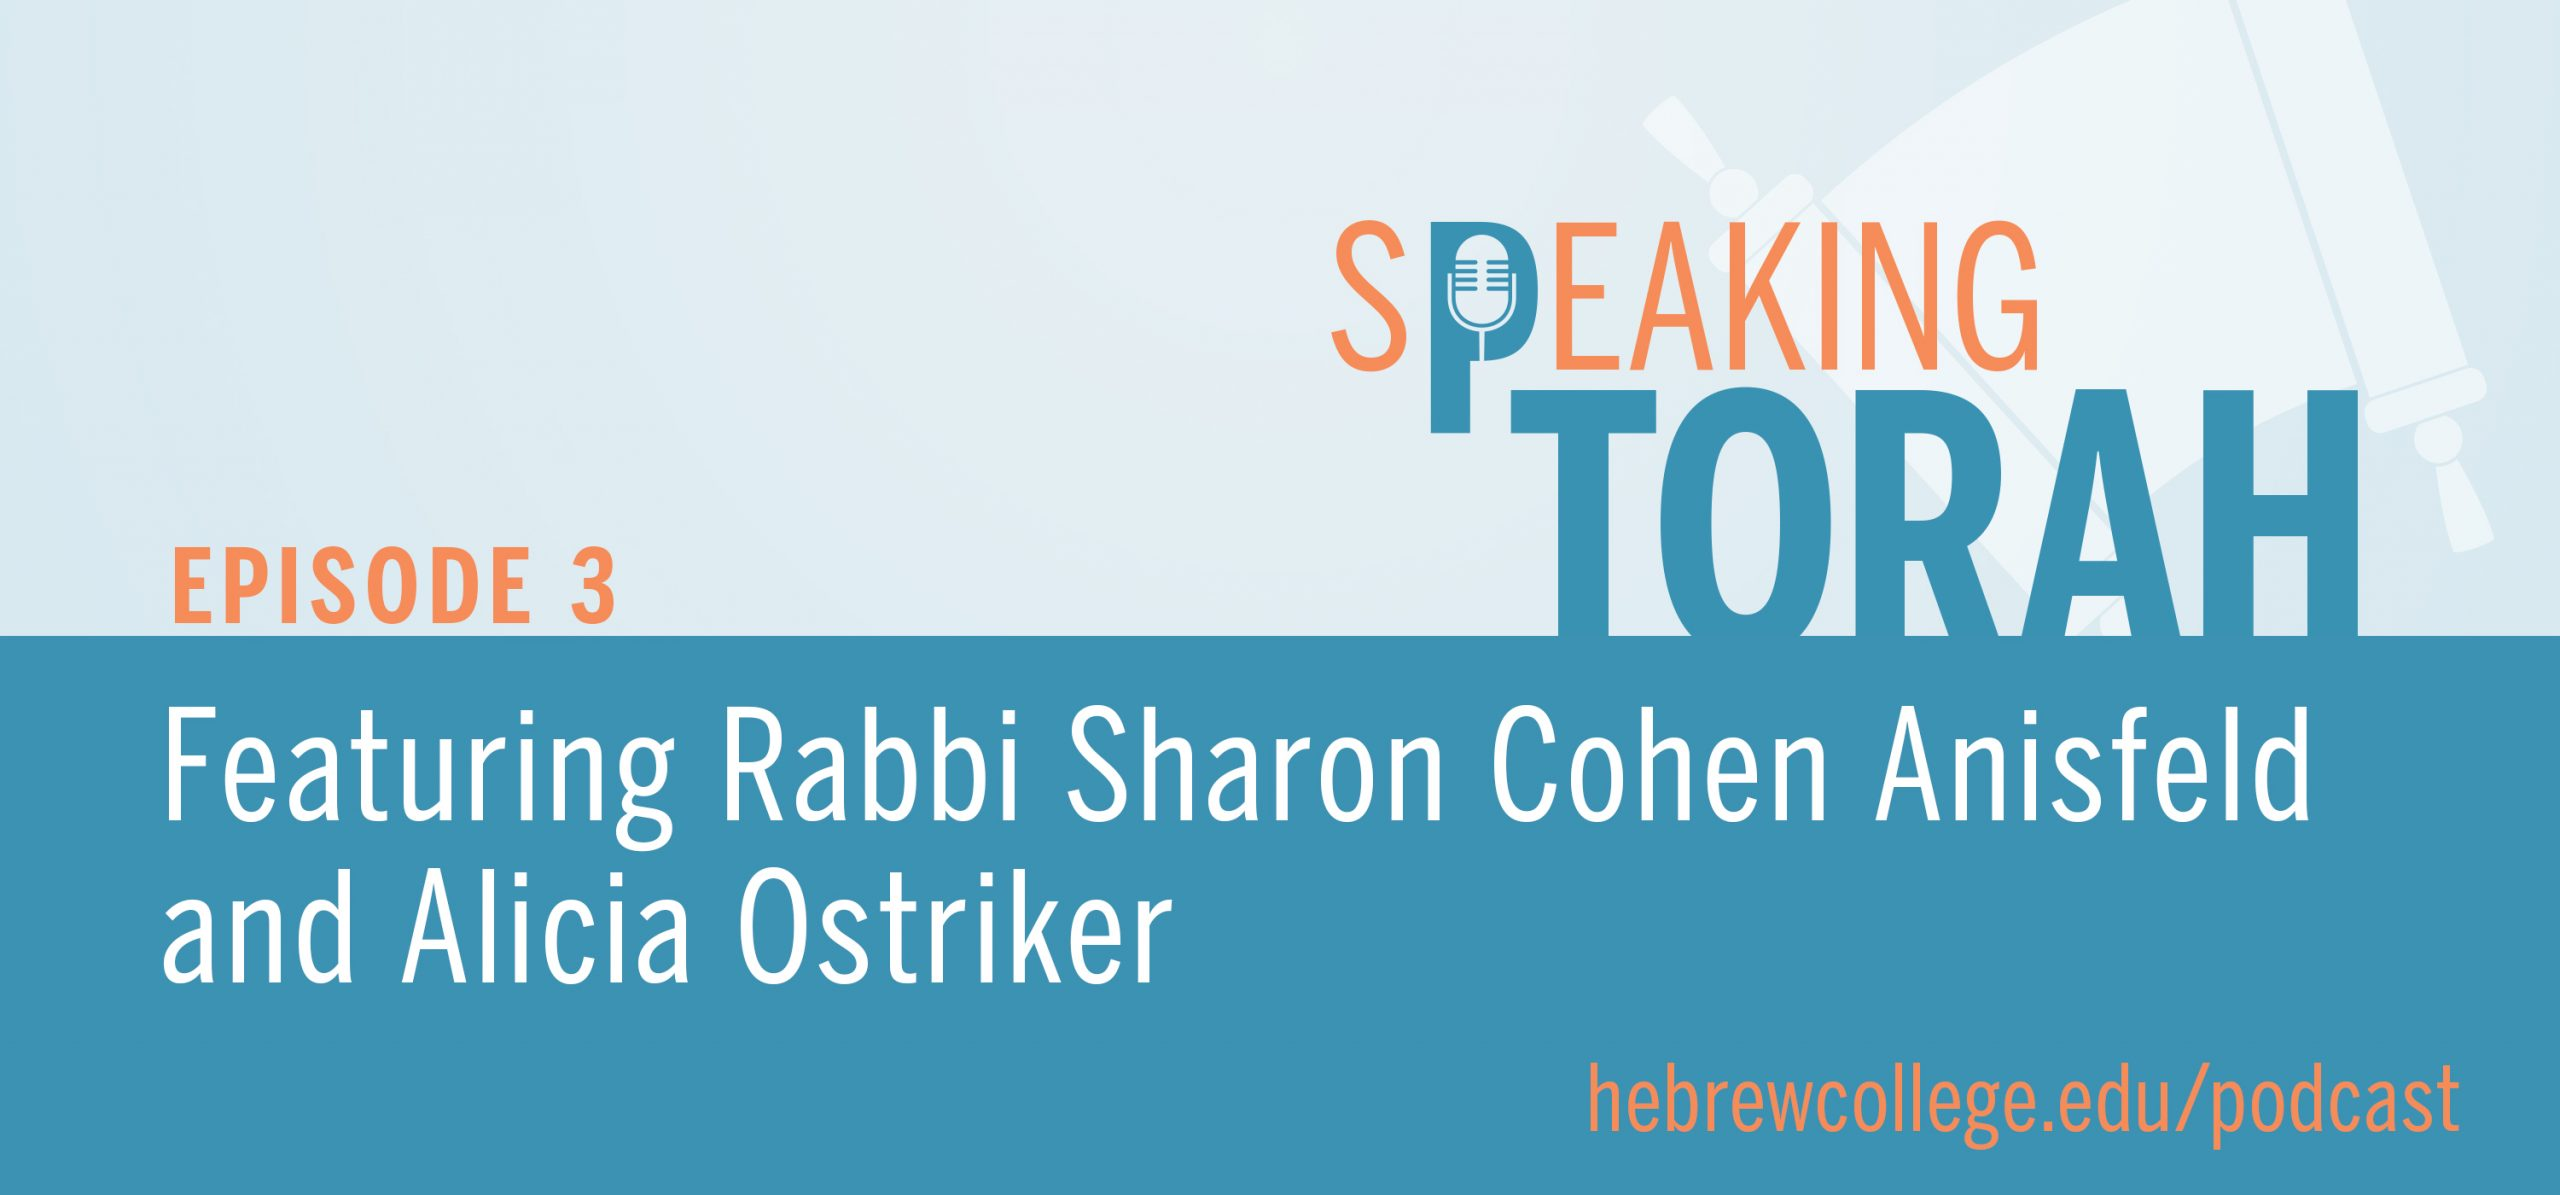 Speaking Torah presented by Hebrew College | Extending the Horizons of Our Hearts by Rabbi Sharon Cohen Anisfeld, Read by Alicia Ostriker